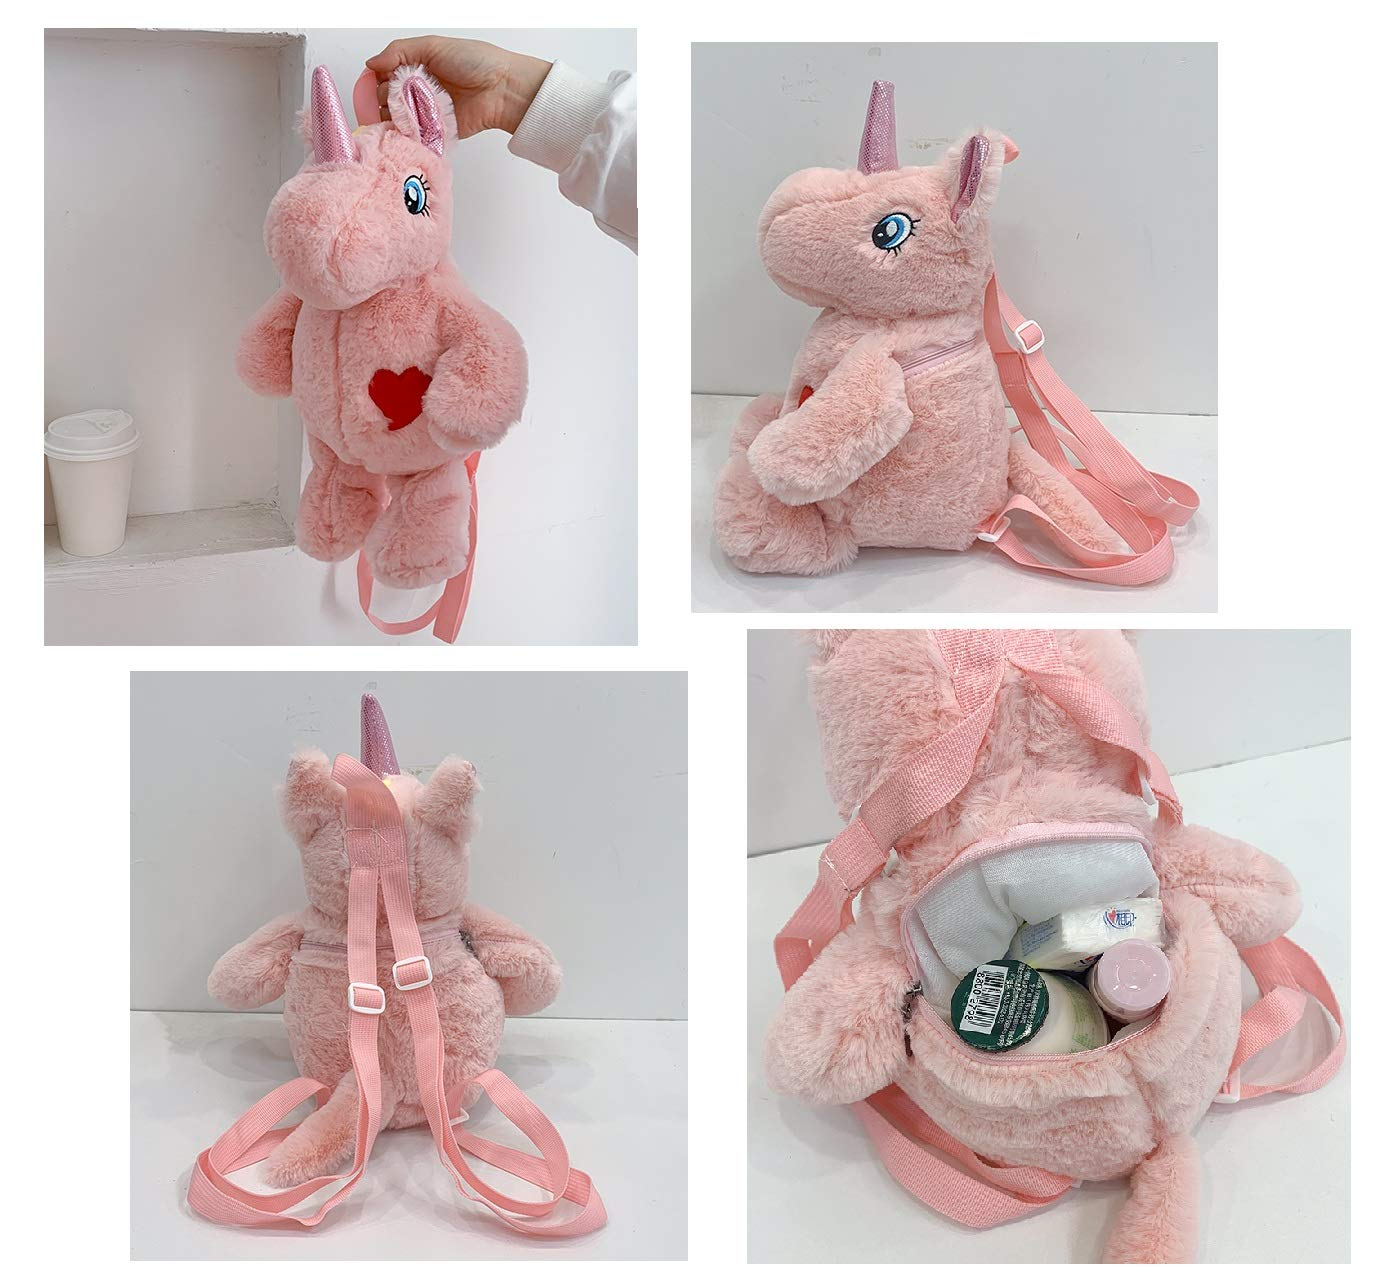 TIGOR Cute Plush Unicorn Backpack, Mini Unicorn Backpack, 3D Unicorn Backpack, Soft Rainbow Backbag Sweet Girls Daughter Gifts (N - 3D Pink)